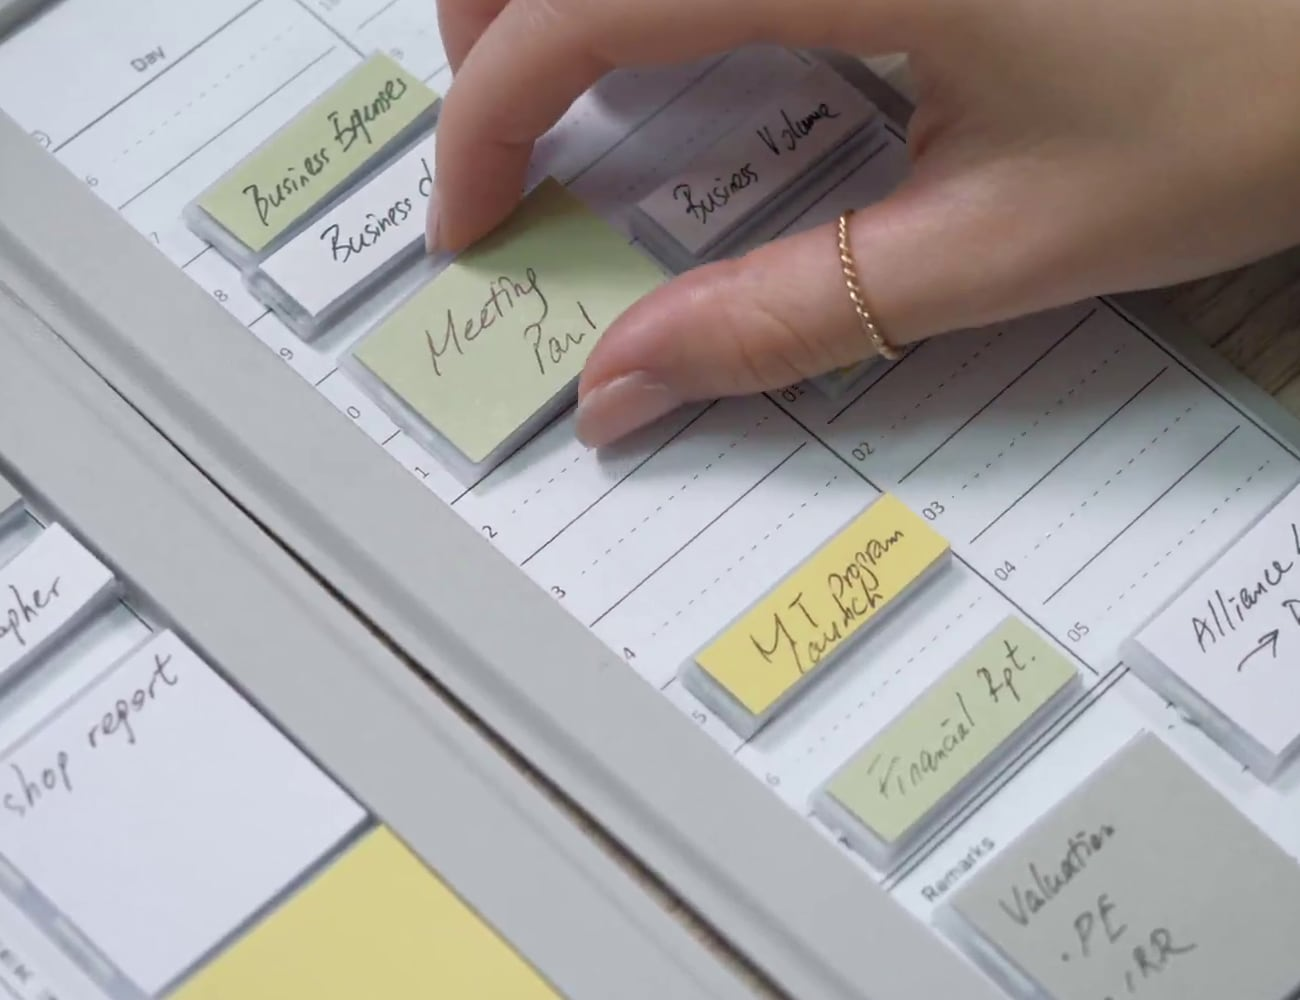 Mover Tactile Movable Thinking Tool creates effortless organization